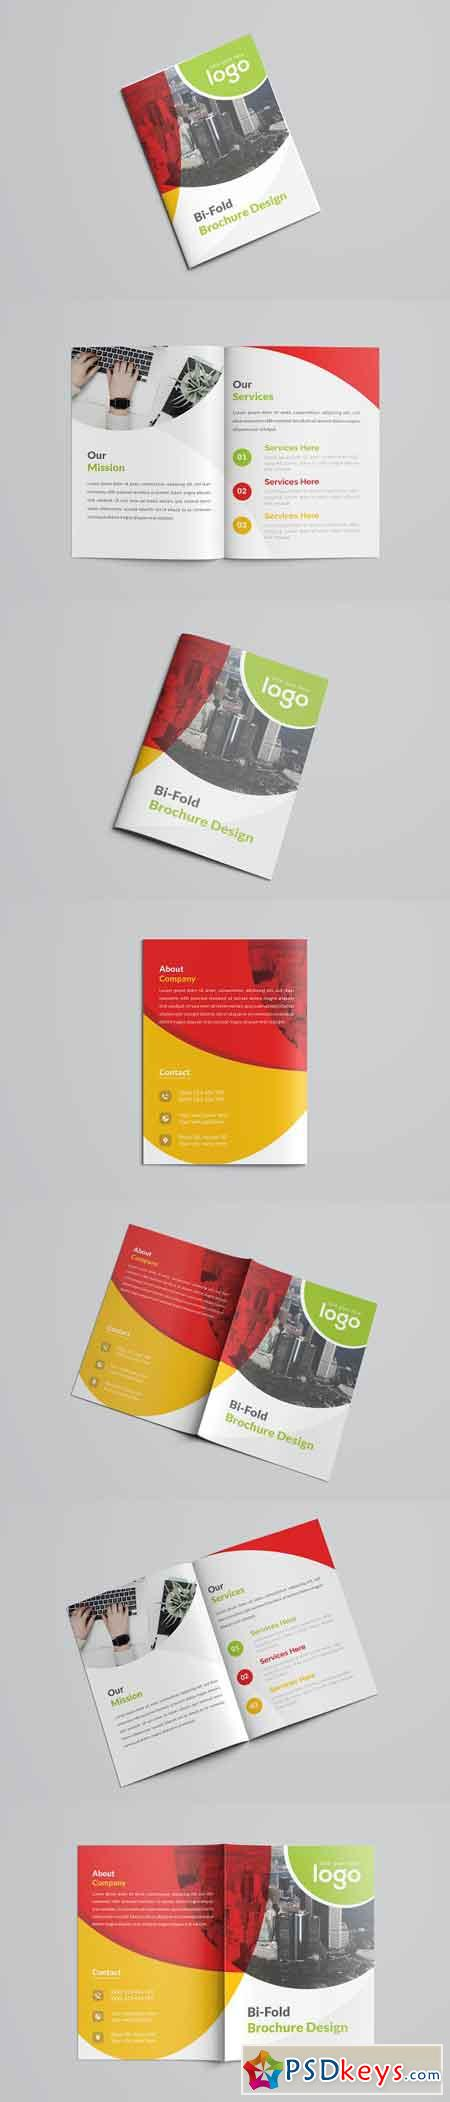 Colorful Business Bifold Brochure 2632902